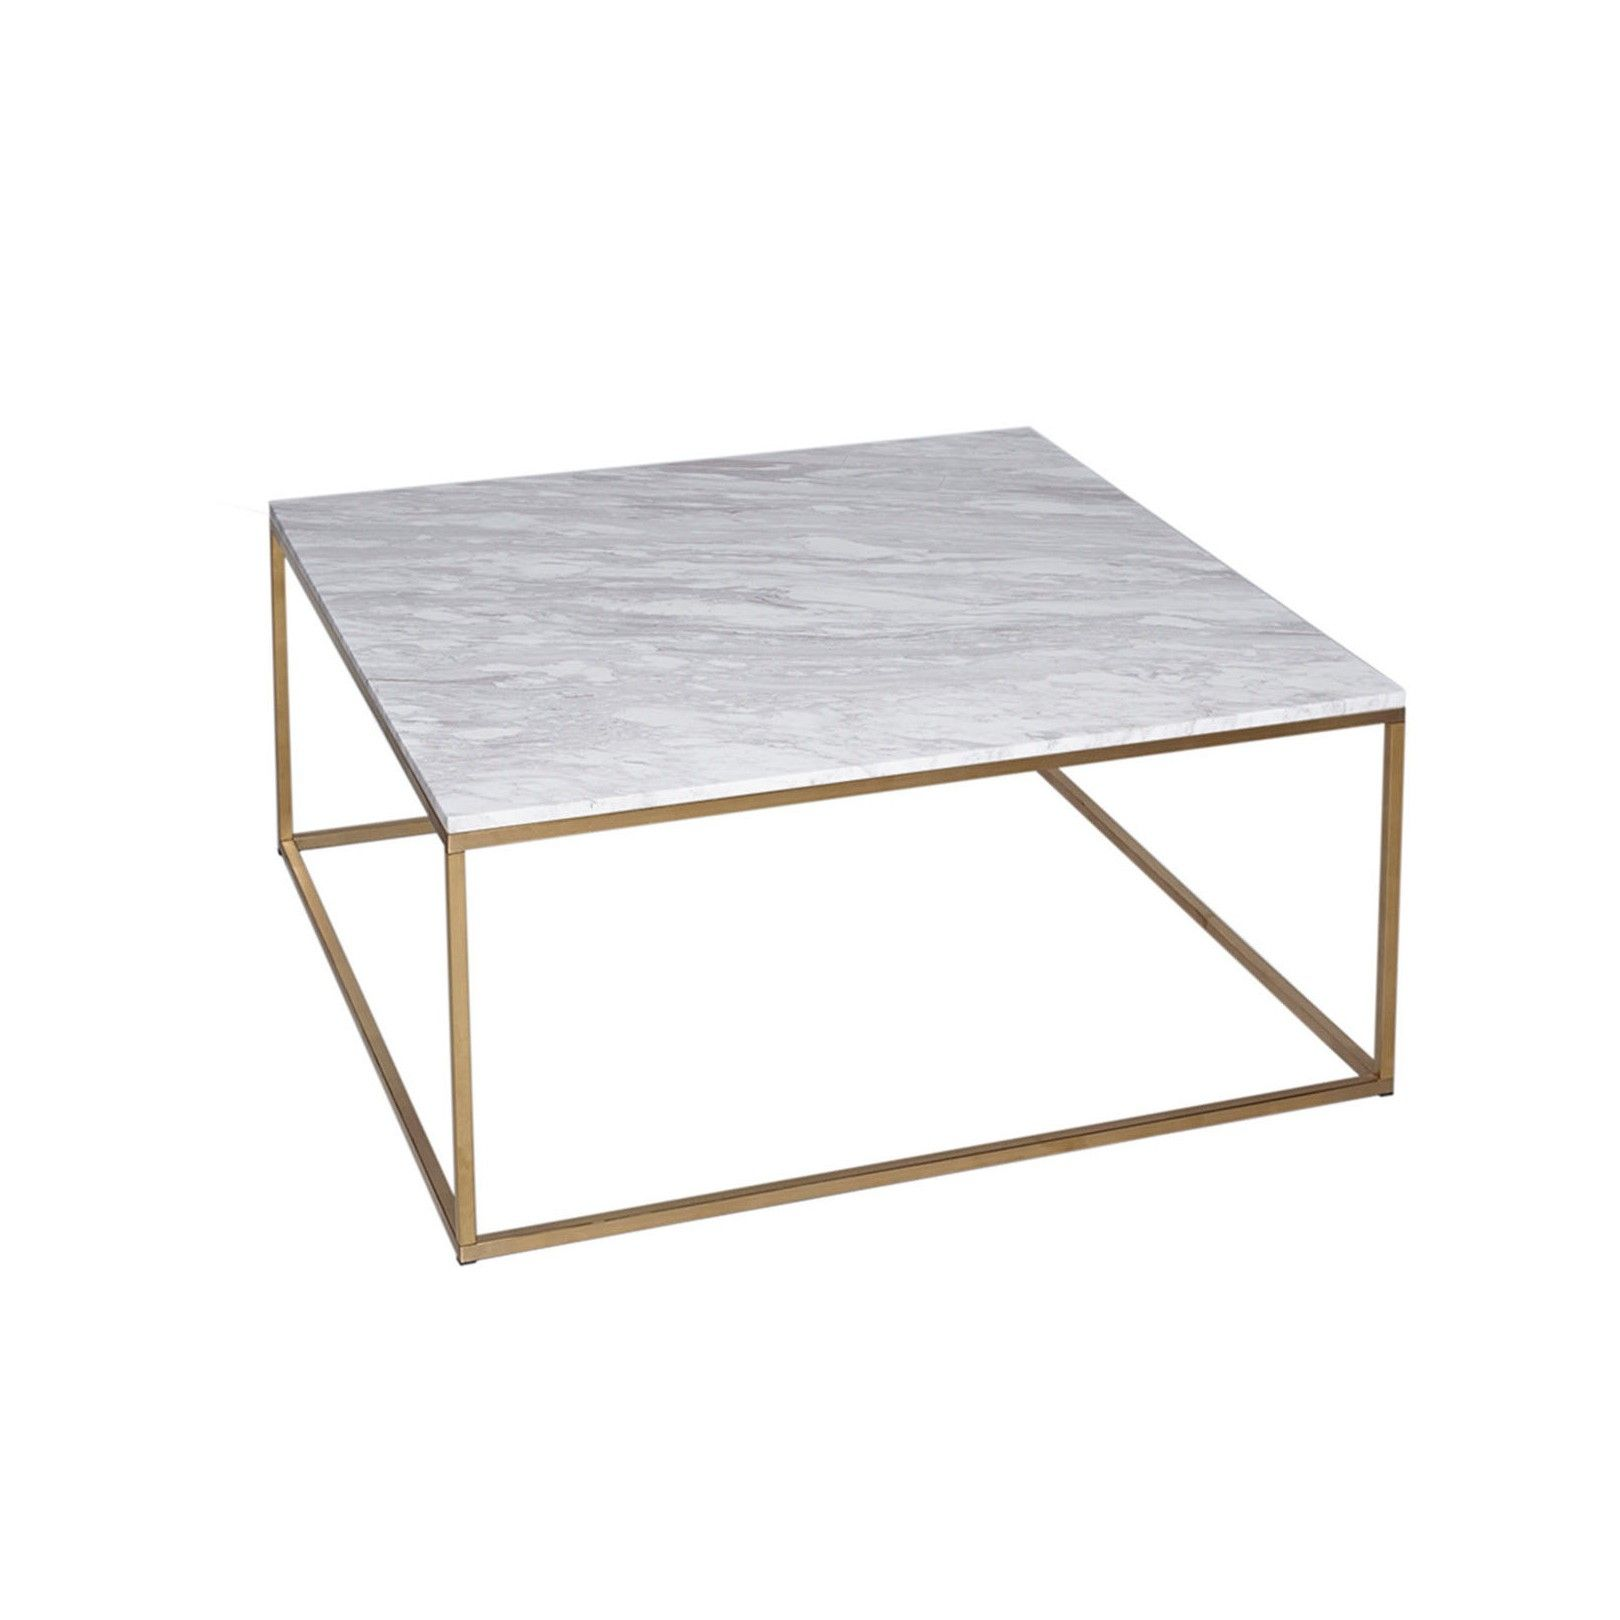 Marble Top Coffee Table Square httptherapybychancecom